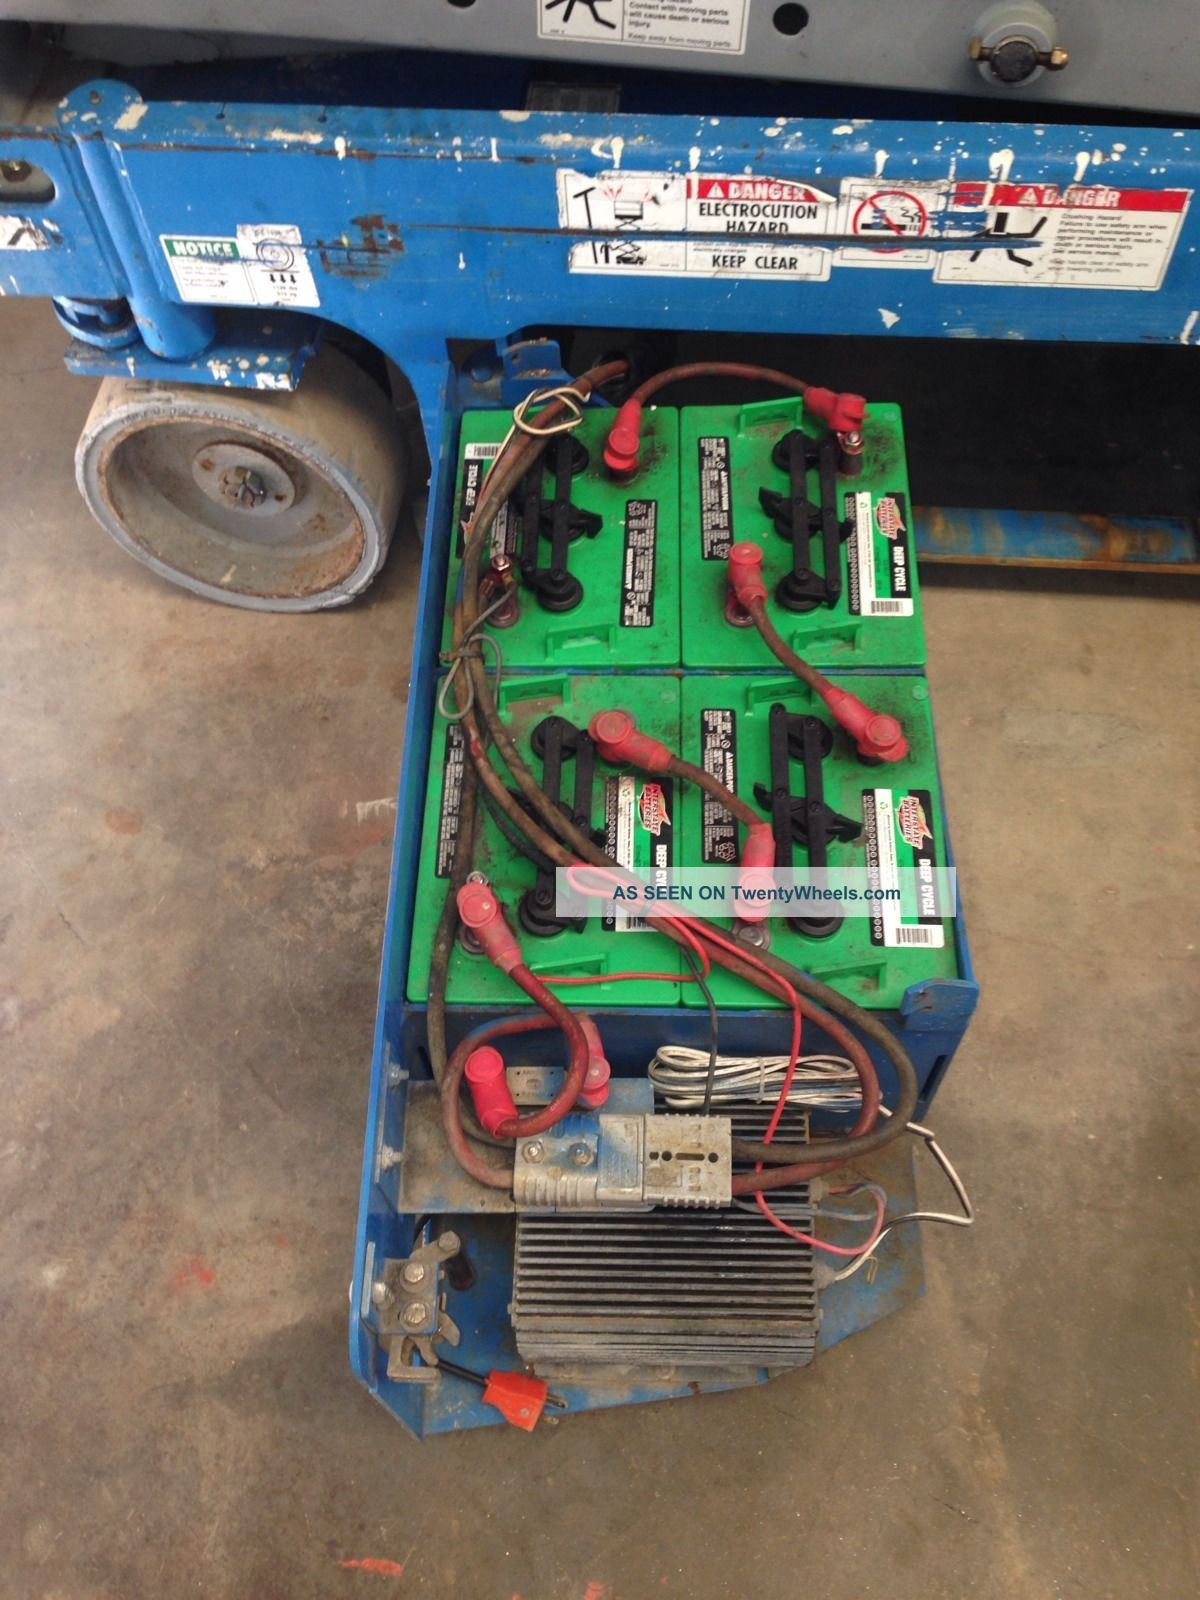 upright scissor lift wiring diagram    upright       scissor       lift    battery hook up    wiring       diagram        upright       scissor       lift    battery hook up    wiring       diagram